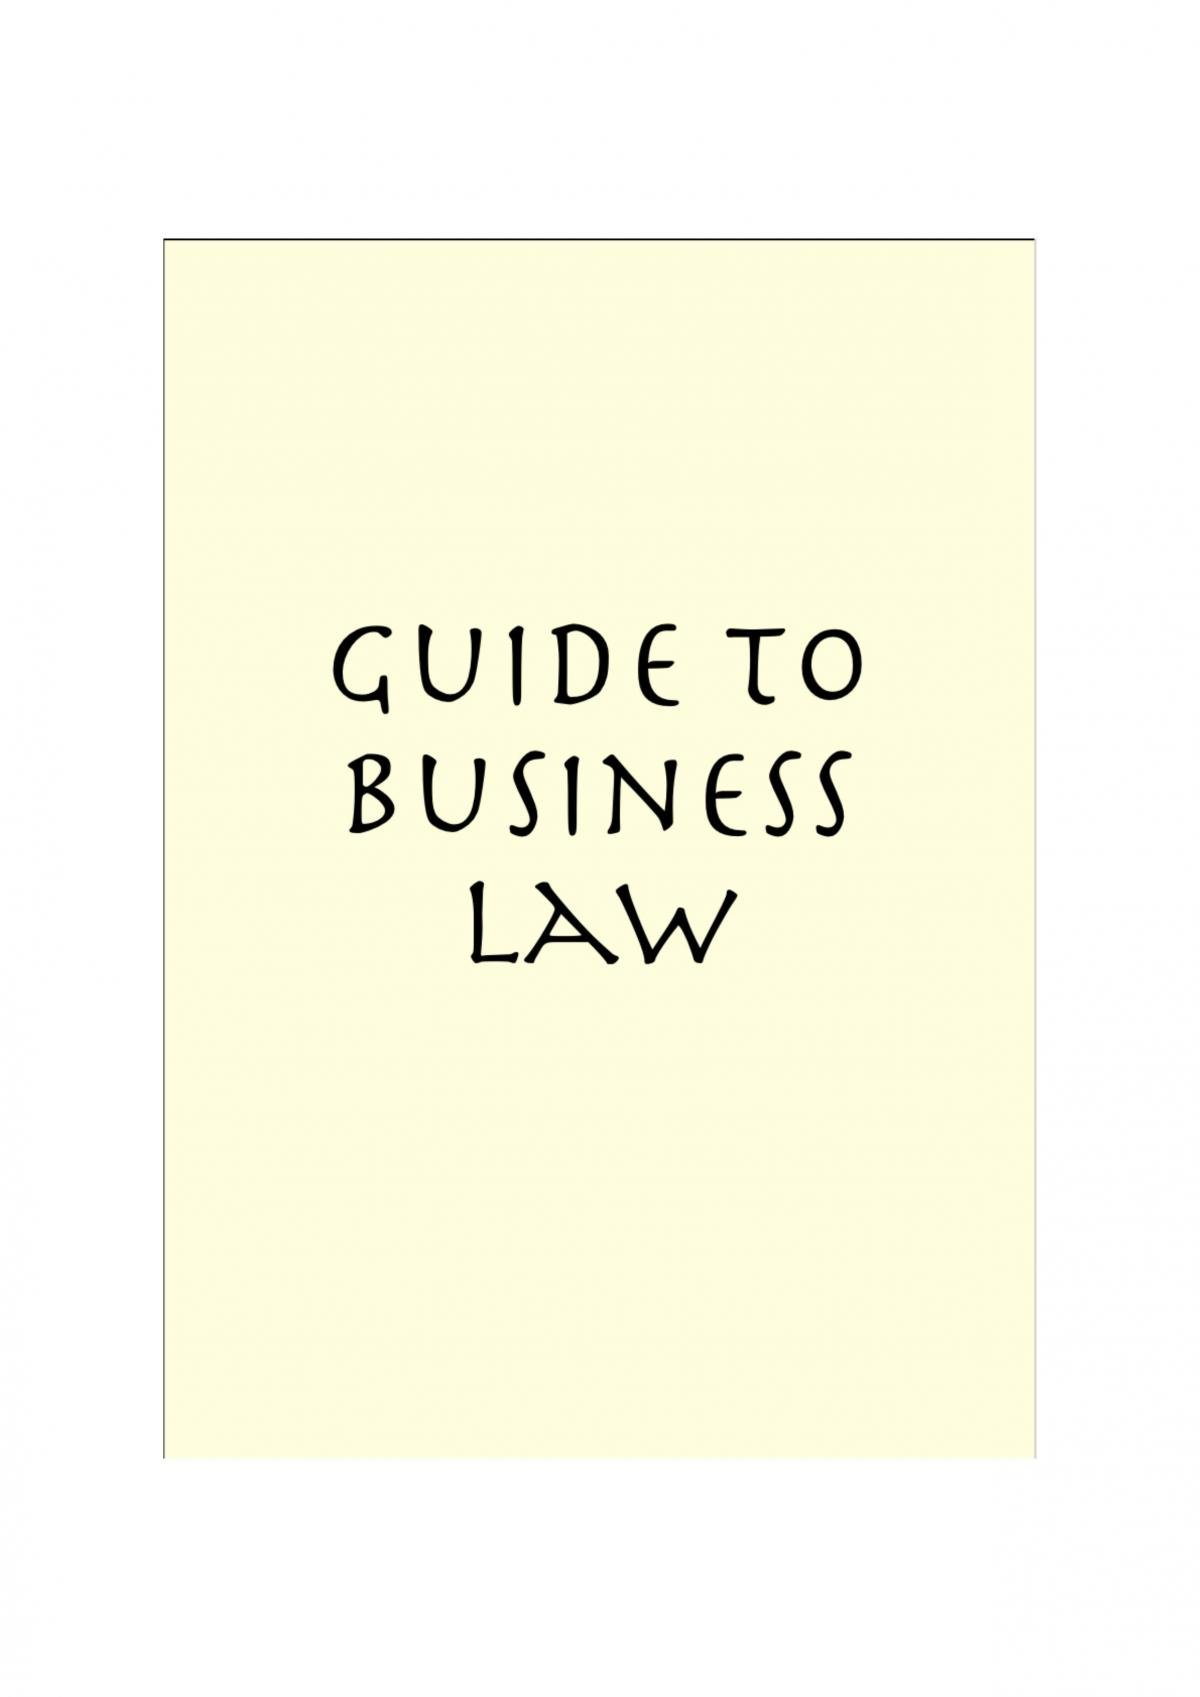 Foundations of Law - LEGL1001 - Page 1